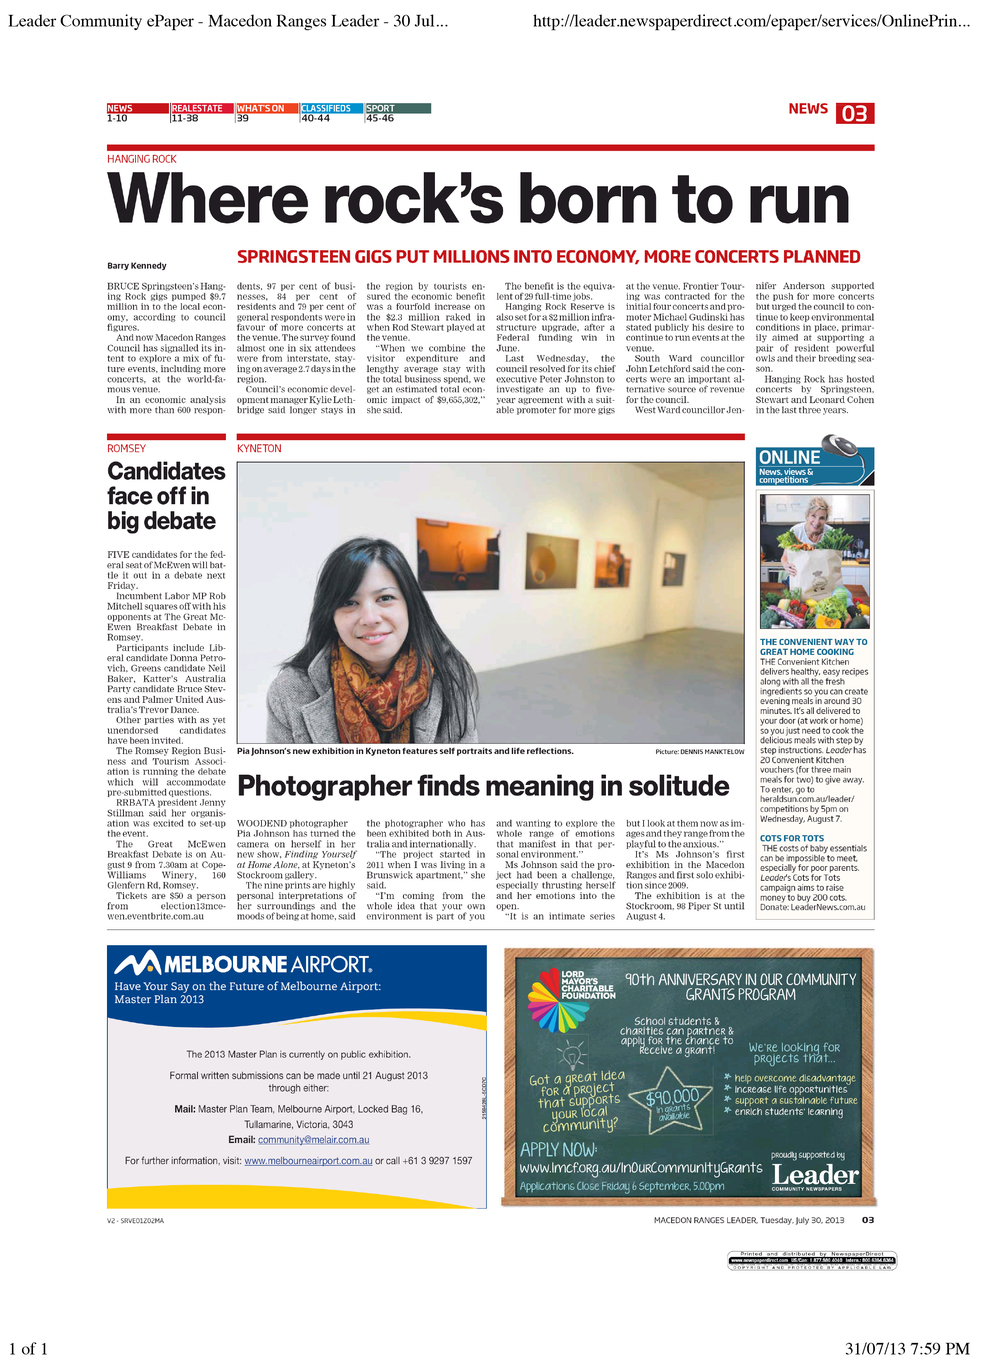 Leader Community ePaper - Macedon Ranges Leader - 30 Jul 2013 - Page #3.jpg